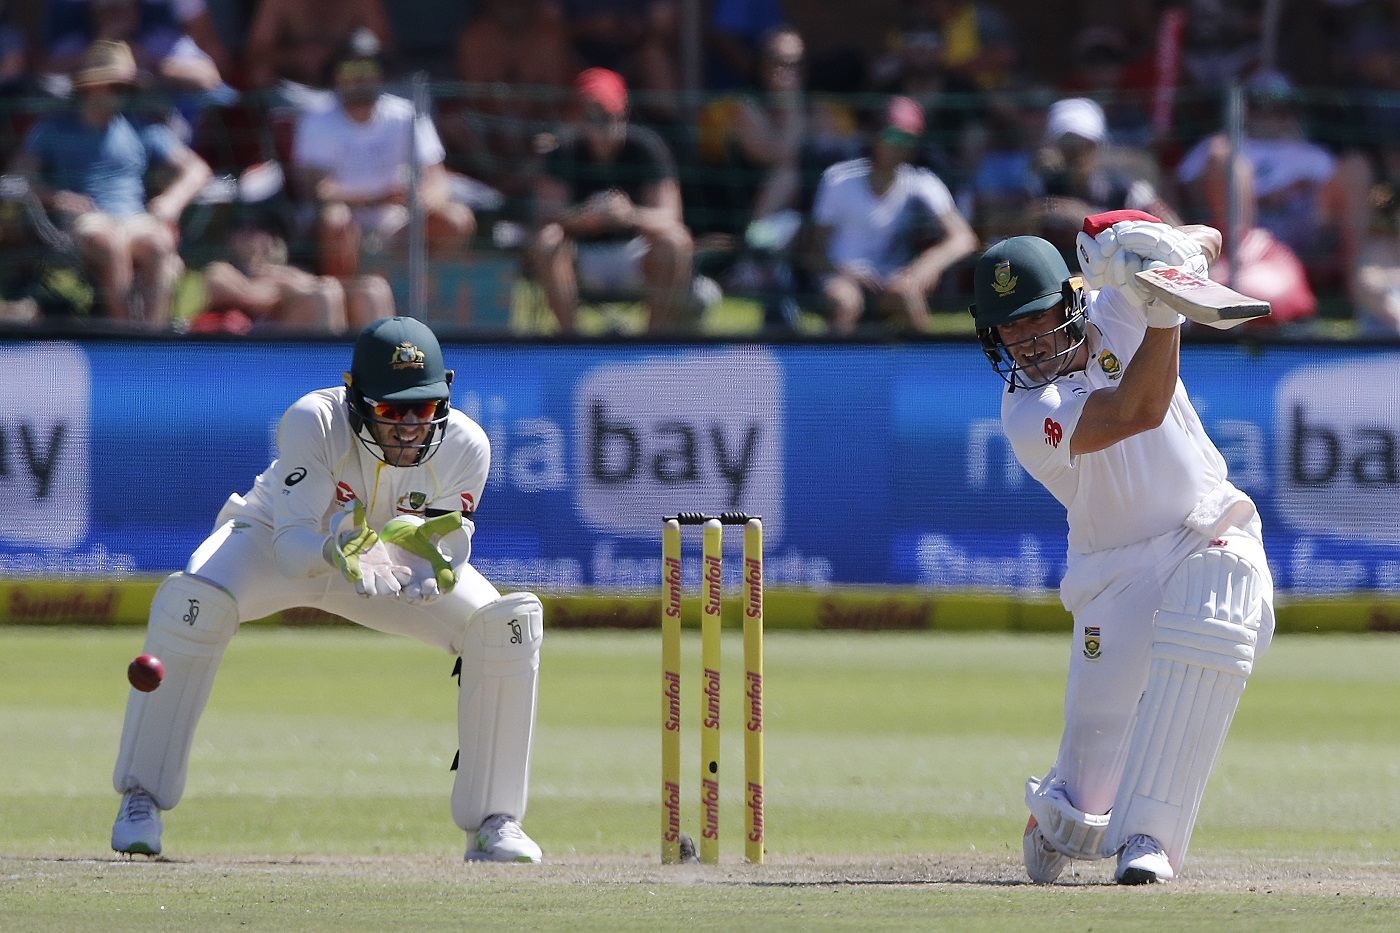 Video AB De Villiers Masterclass Brilliant South African Bowling And Australian Fight Back